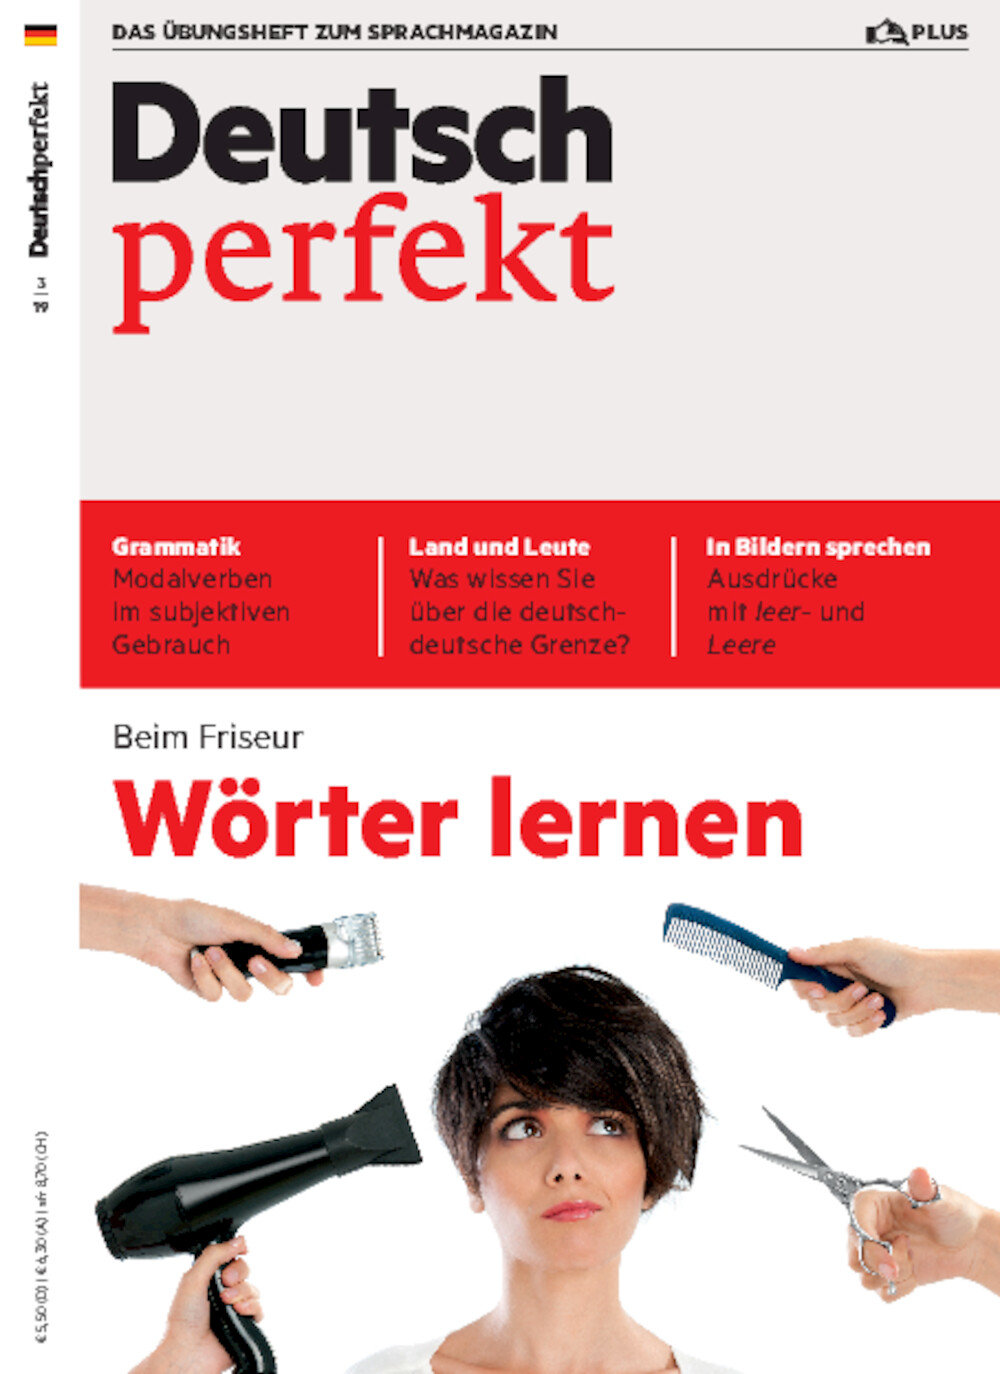 Deutsch perfekt PLUS ePaper 03/2019